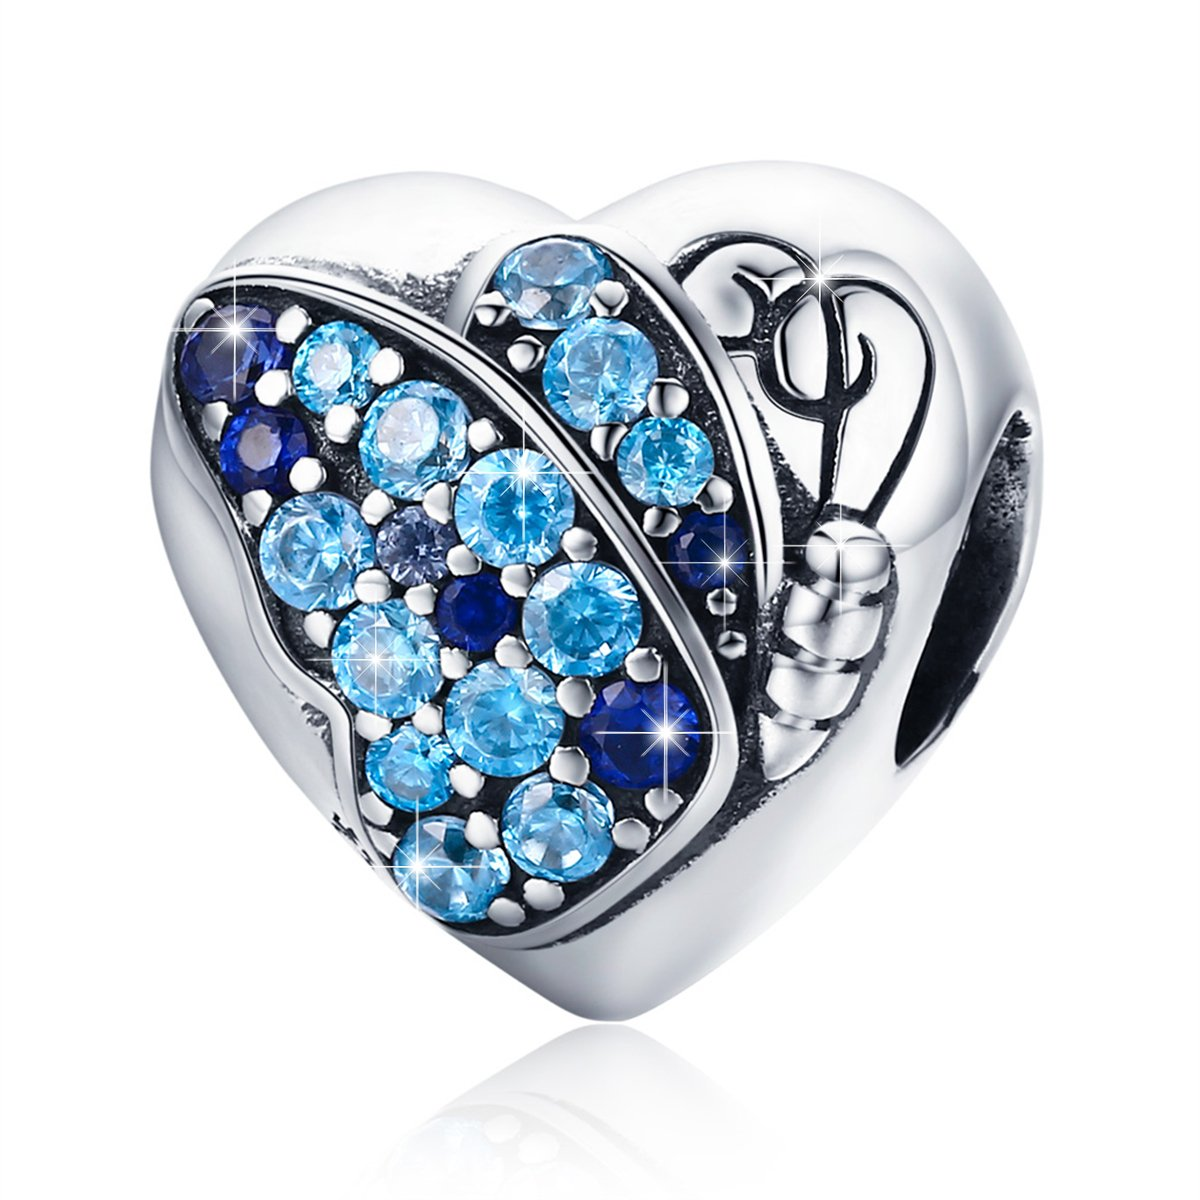 BAMOER 925 Sterling Silver Heart Charm Bead Love Charm Fit for Snake Chain Bracelet Butterfly Charm